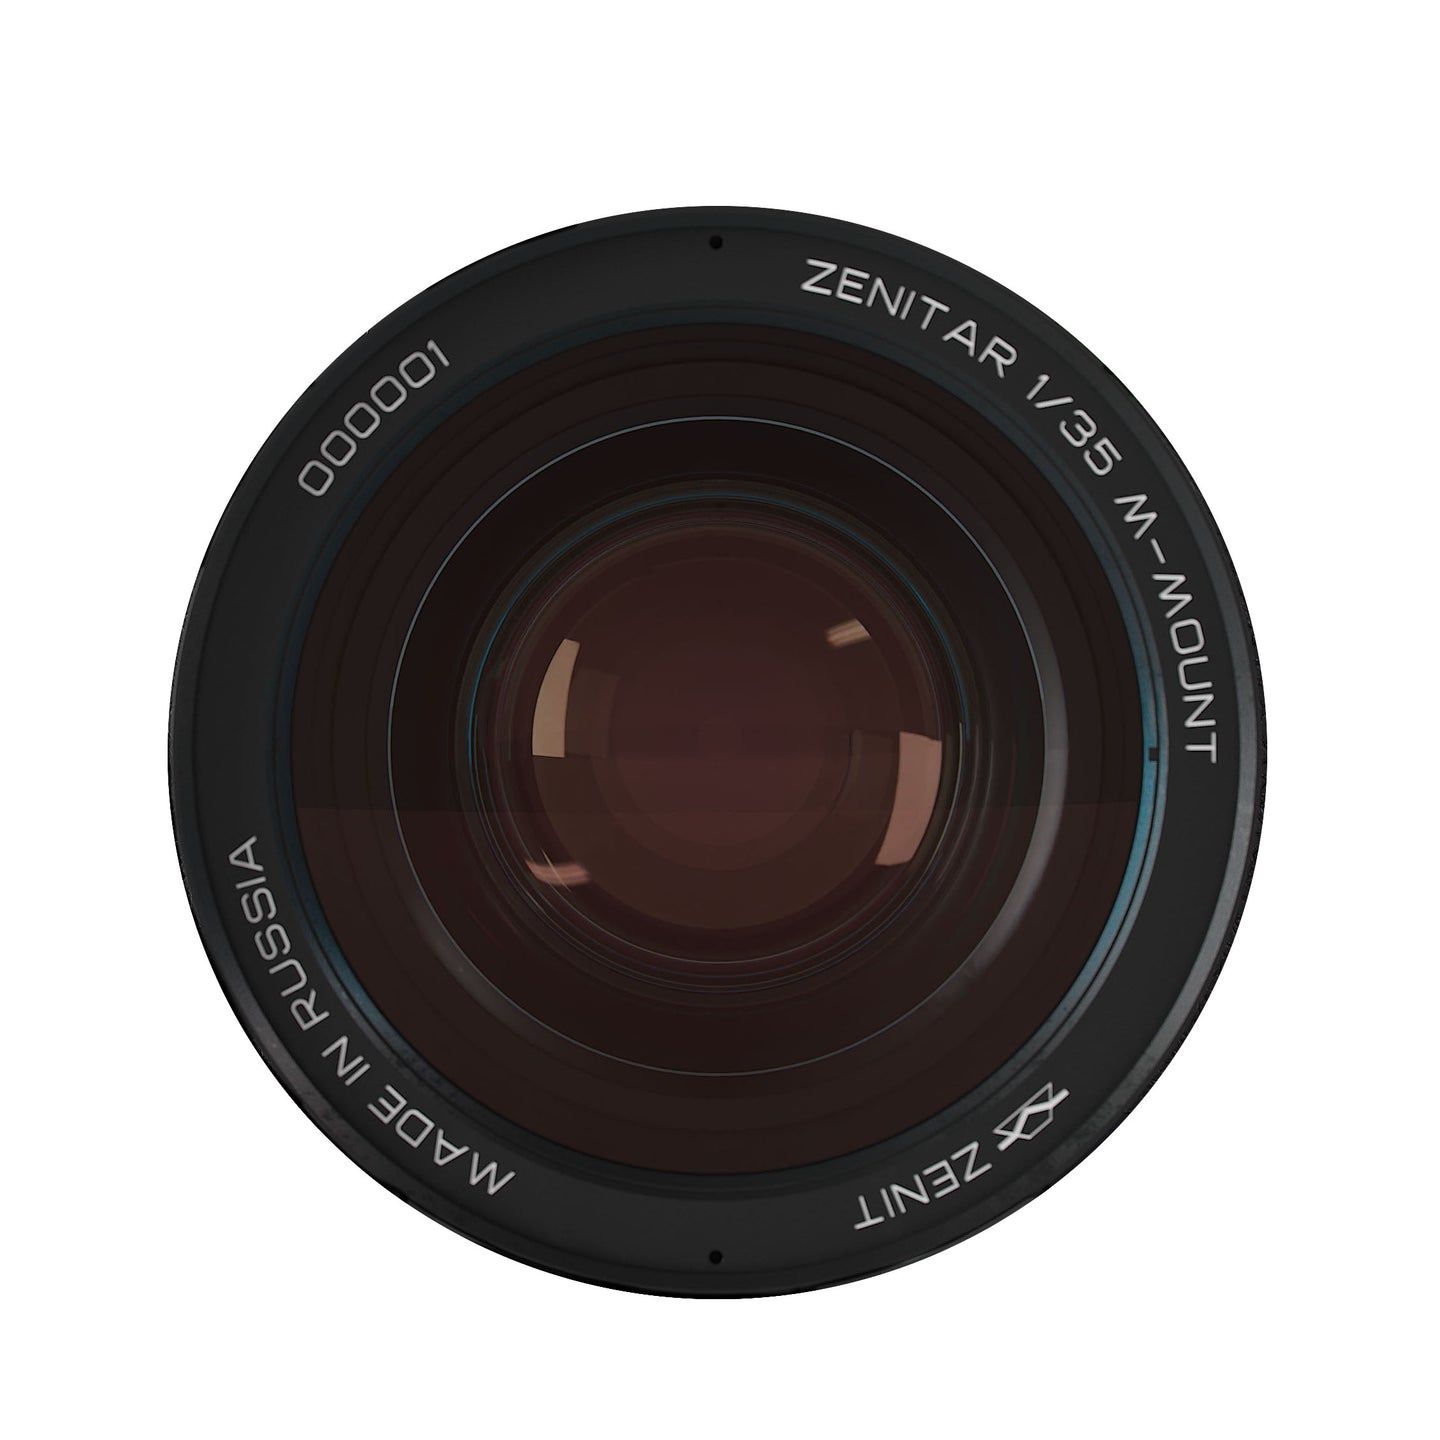 35mm f/1.0 Zenitar for Zenit-M or Leica M cameras